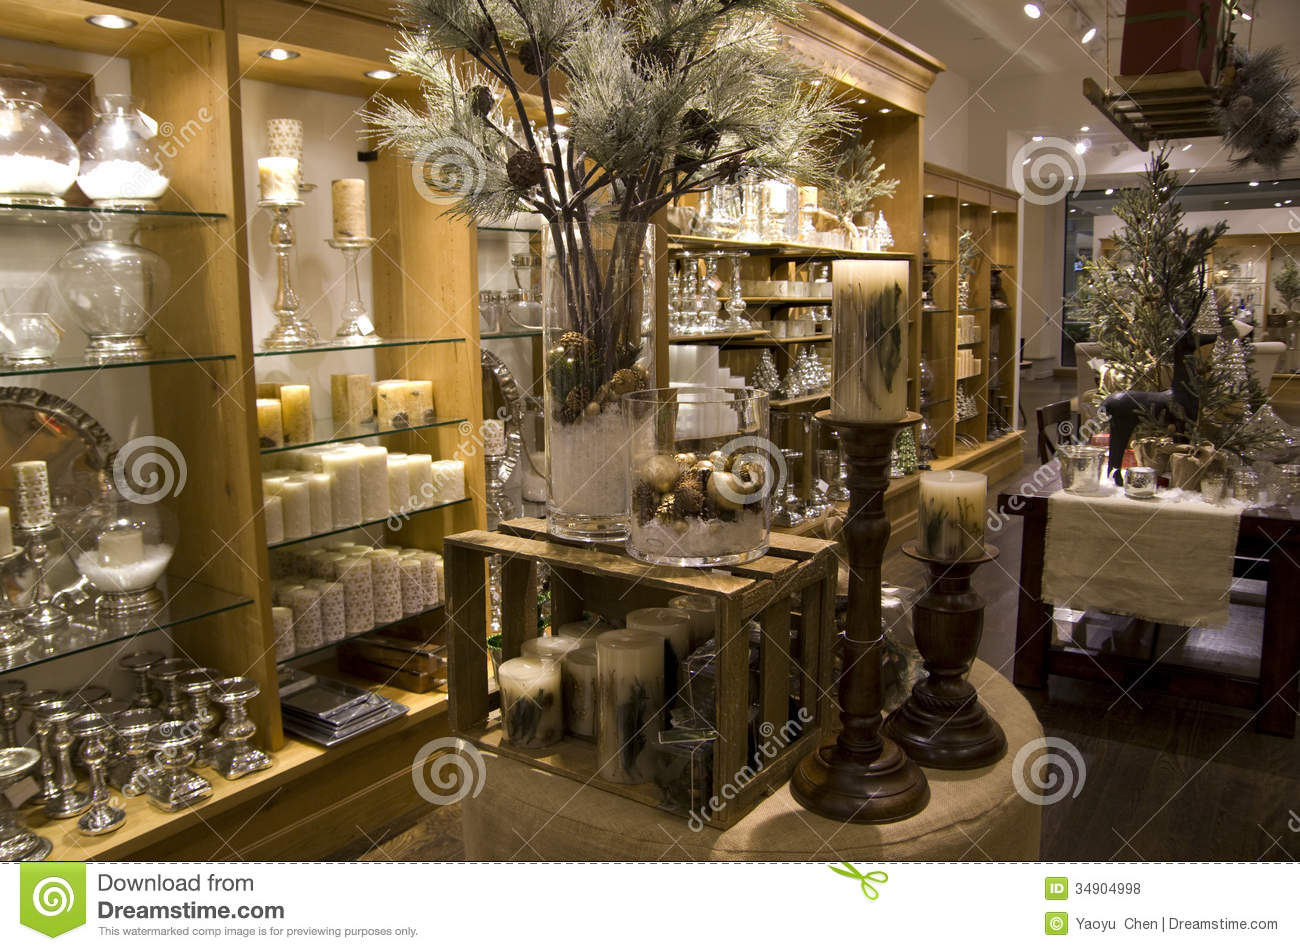 Home decor store stock photo image of lighting shelves for Home decor outlet stores online